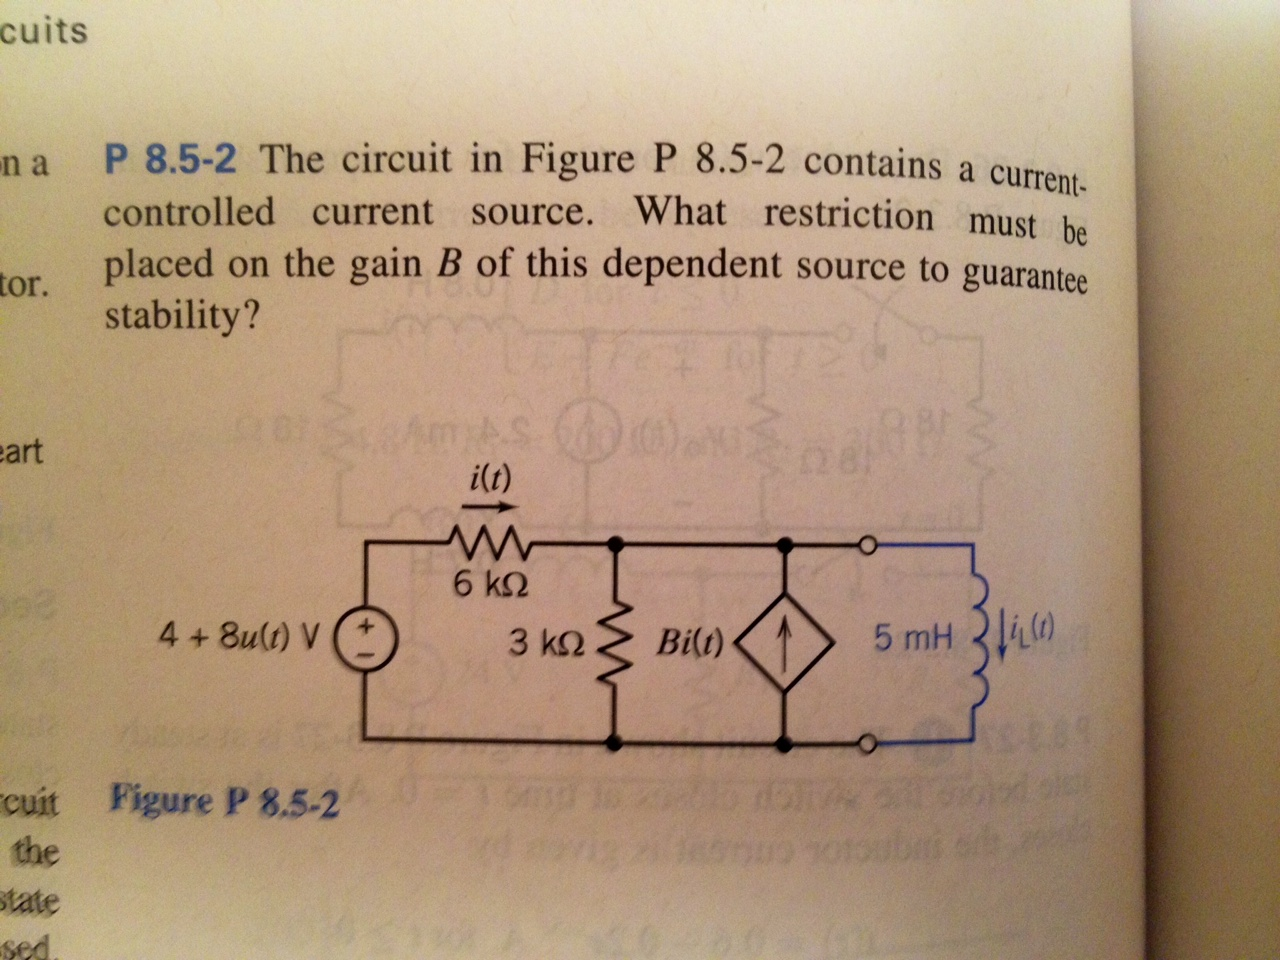 The circuit in Figure P 8.5-2 contains a current.